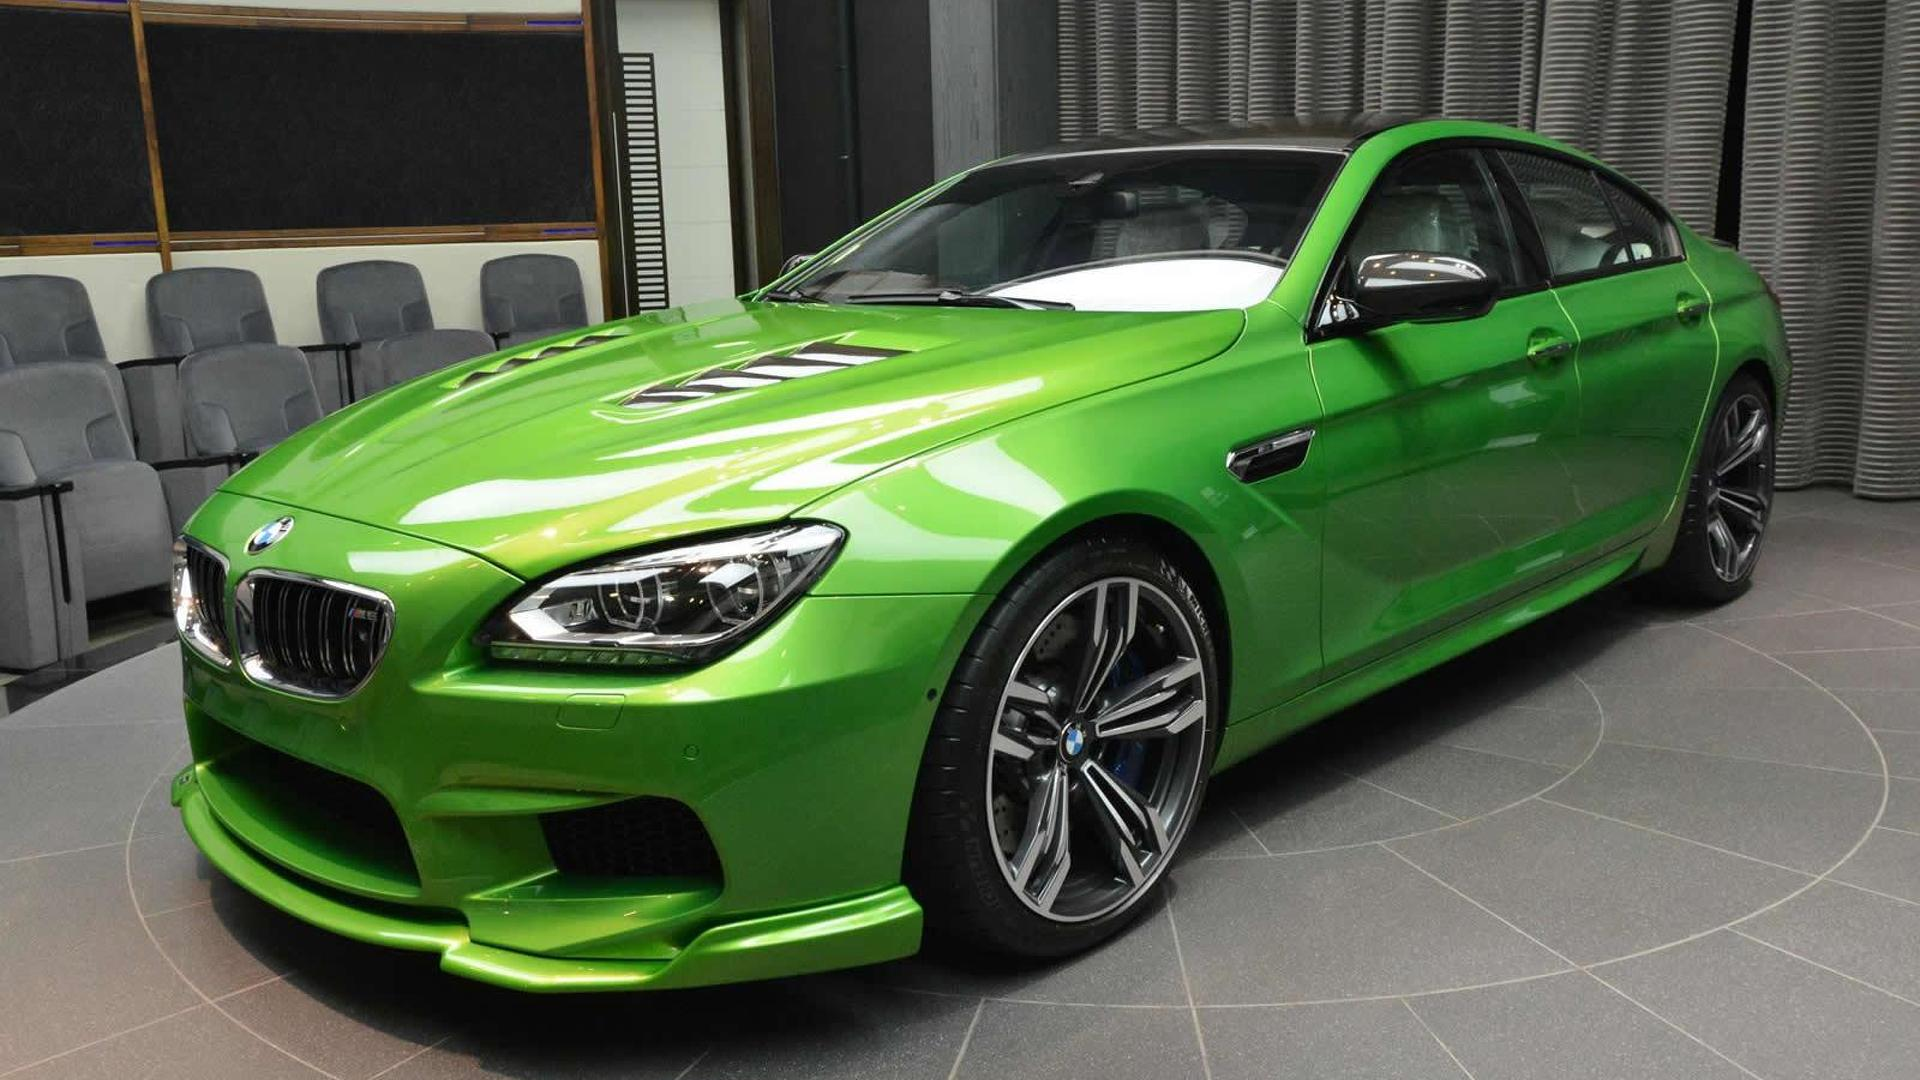 Heavily Modified Bmw M6 Gran Coupe In Java Green Looks